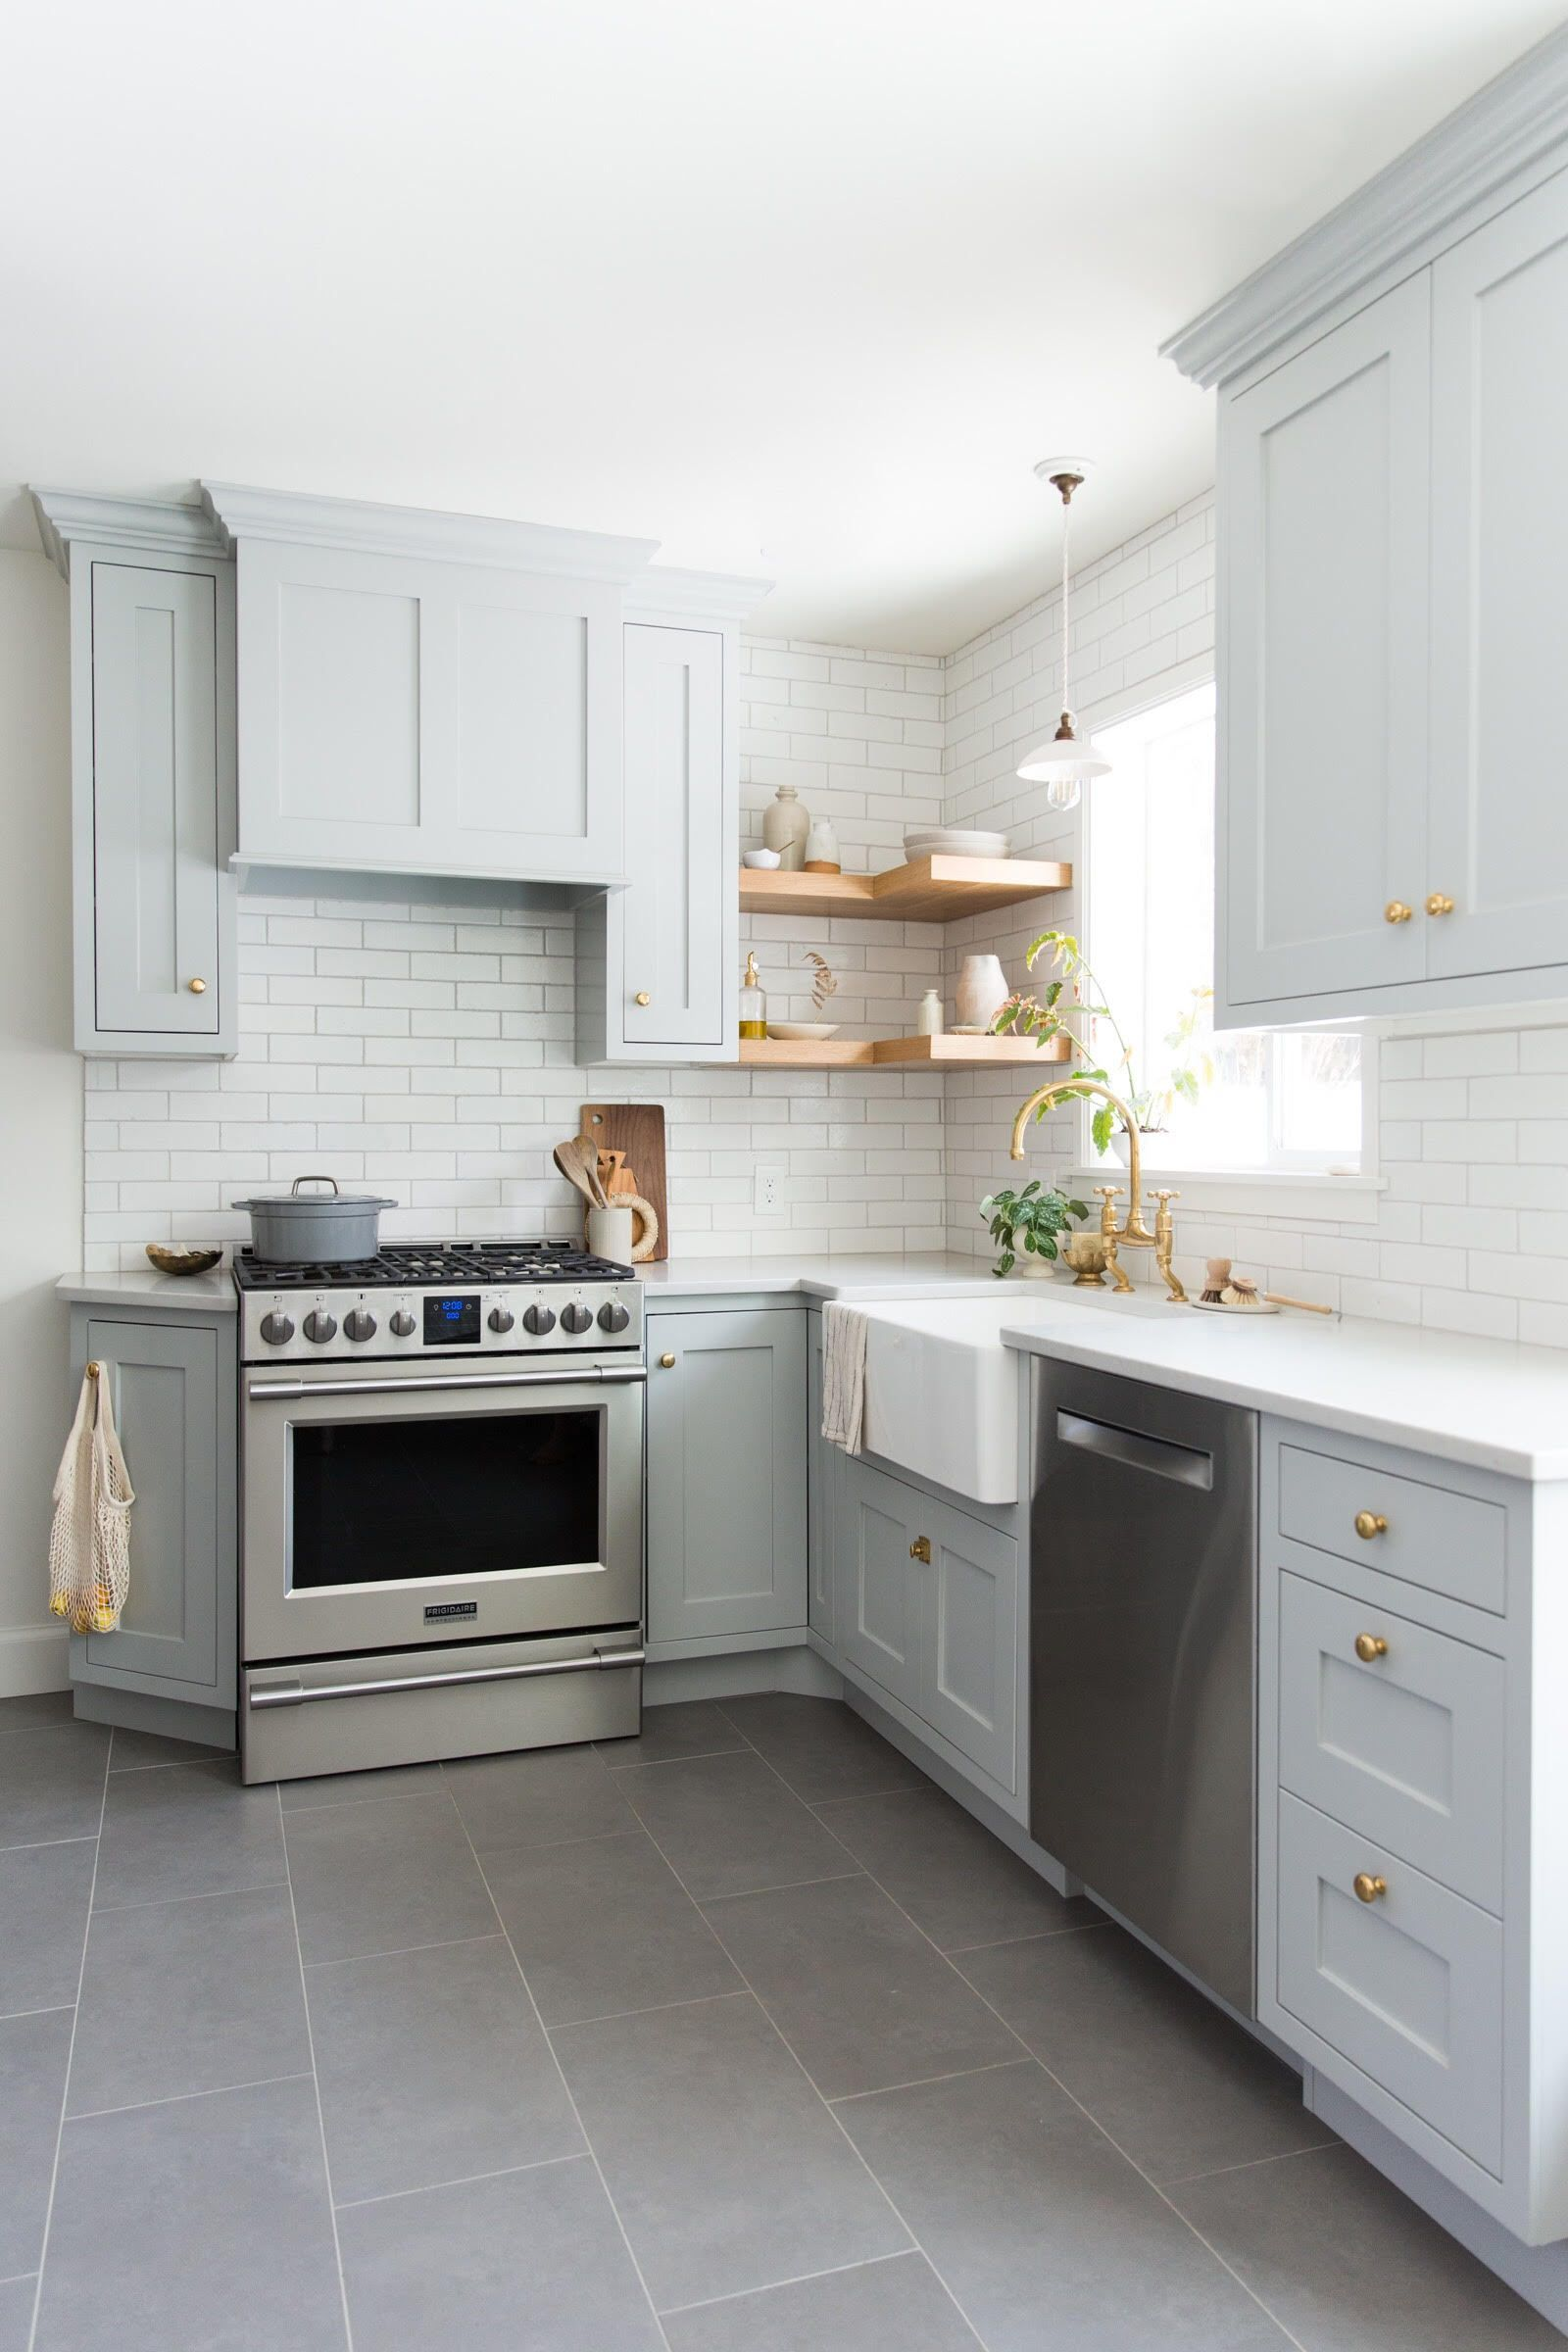 This sleek, traditional kitchen features our Glazed Thin Brick in Olympic on the…